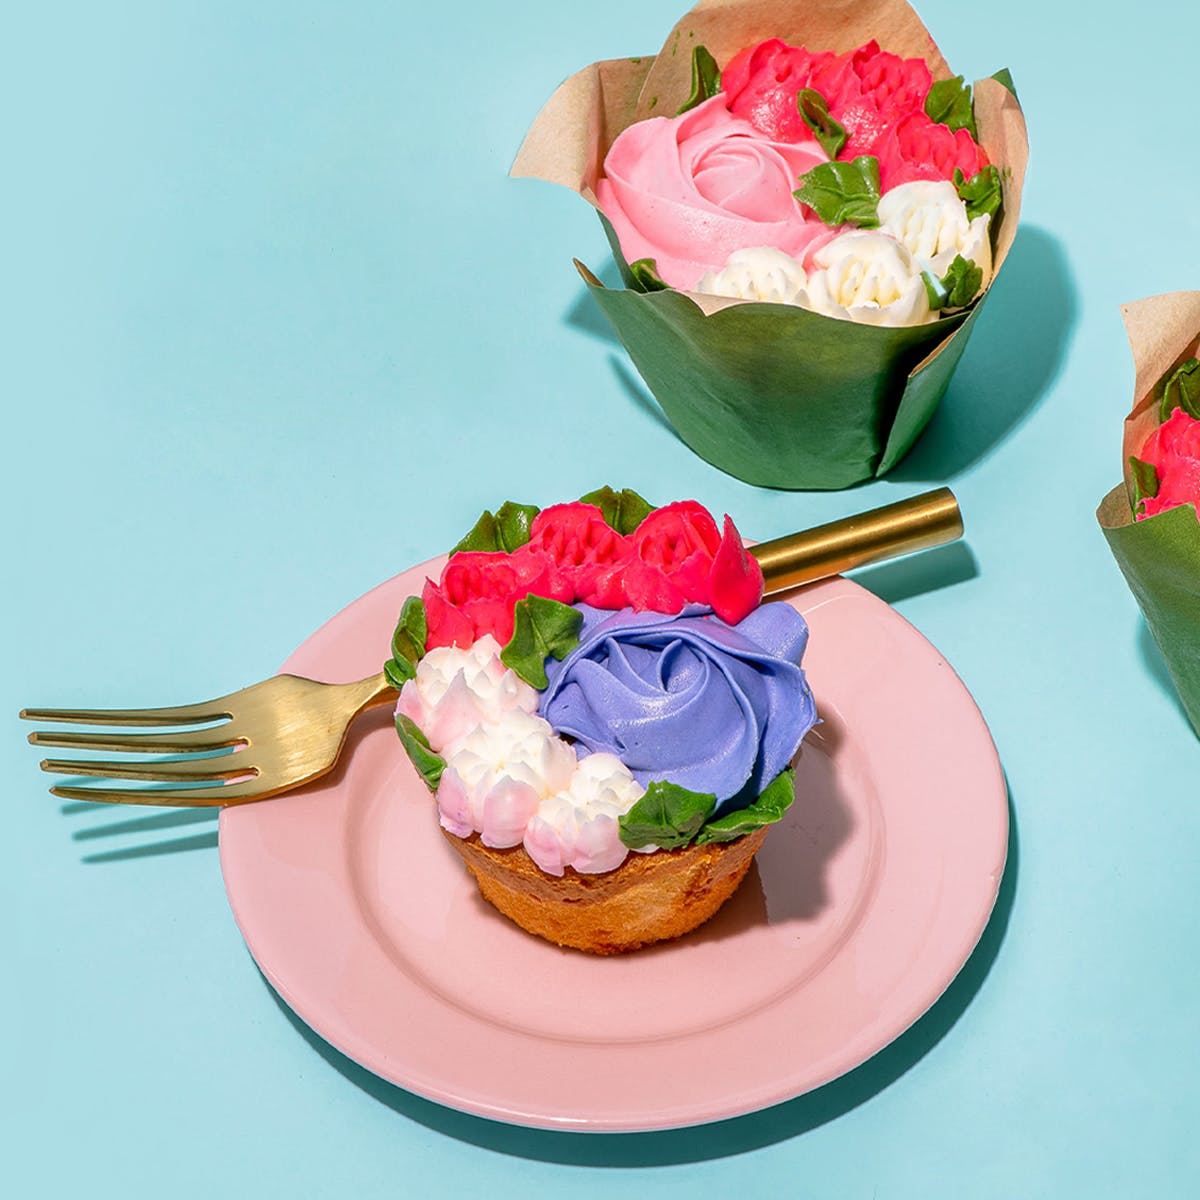 Bouquet Cupcakes 8 Pack By We Take The Cake Goldbelly